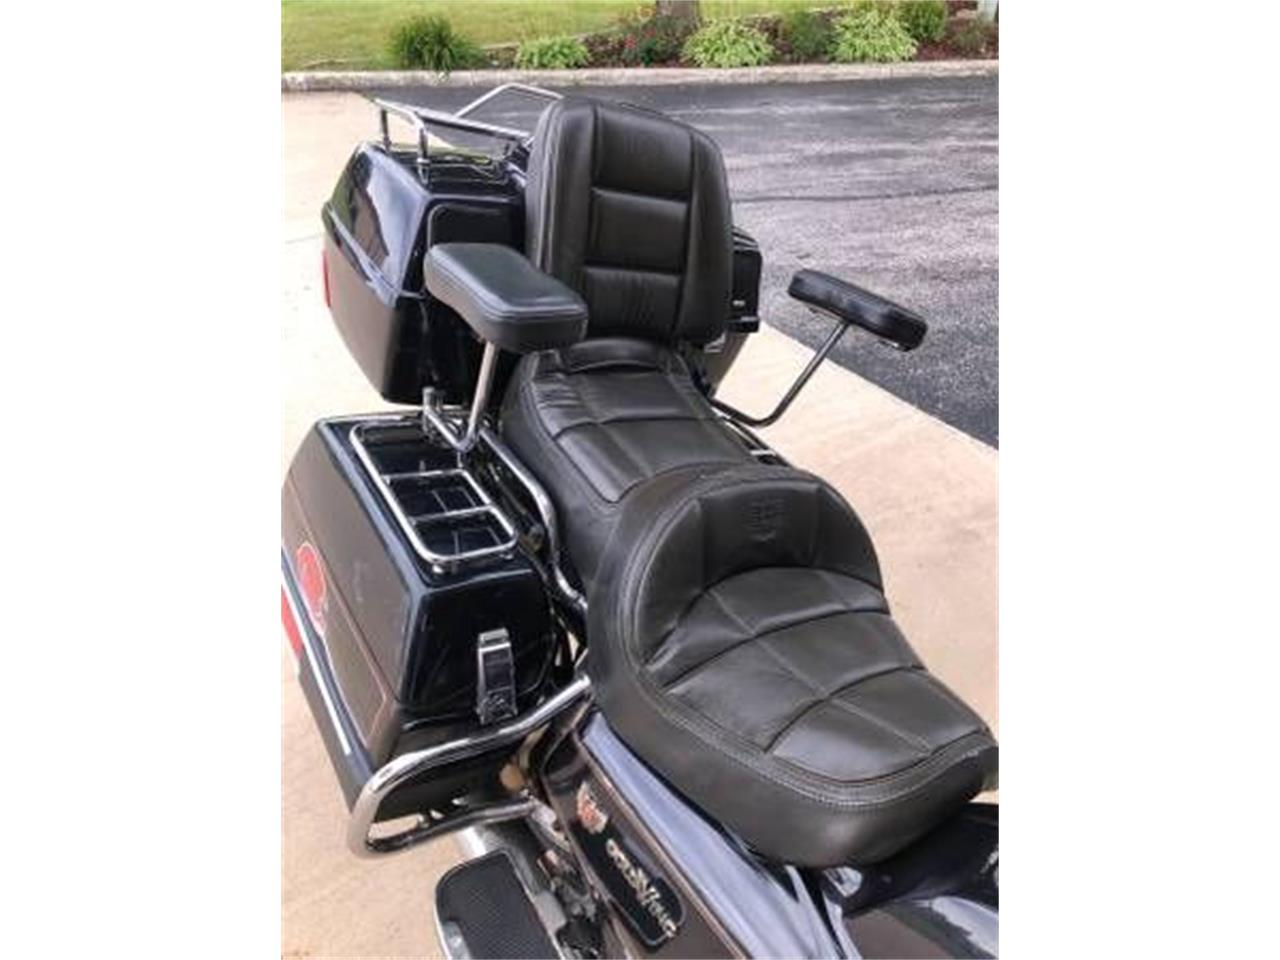 Large Picture of 1998 Honda Goldwing located in Michigan - $3,795.00 - R0KJ